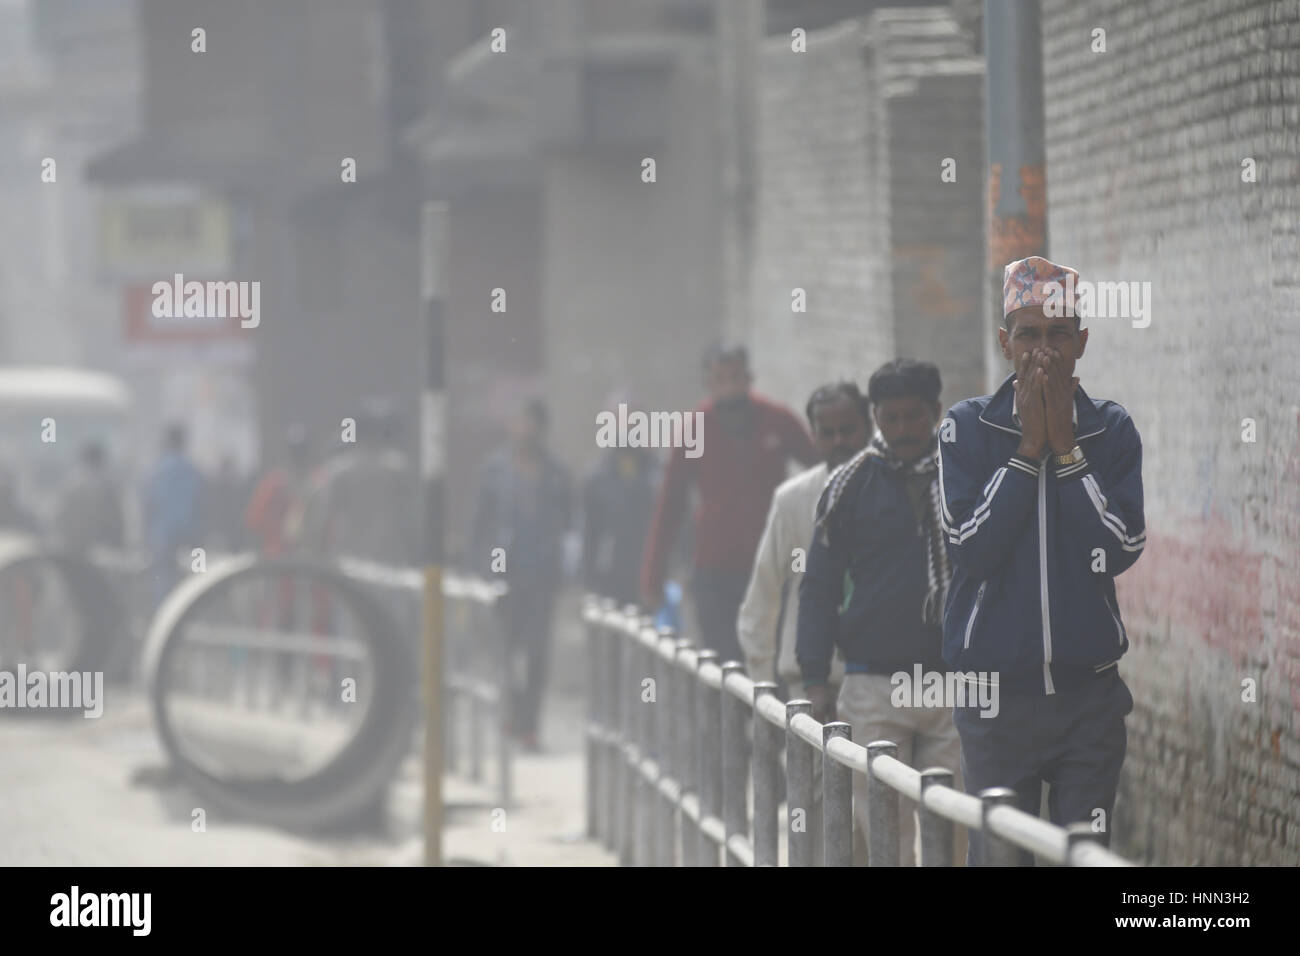 Kathmandu, Nepal. 15th Feb, 2017. A Nepalese man covers his nose to ...